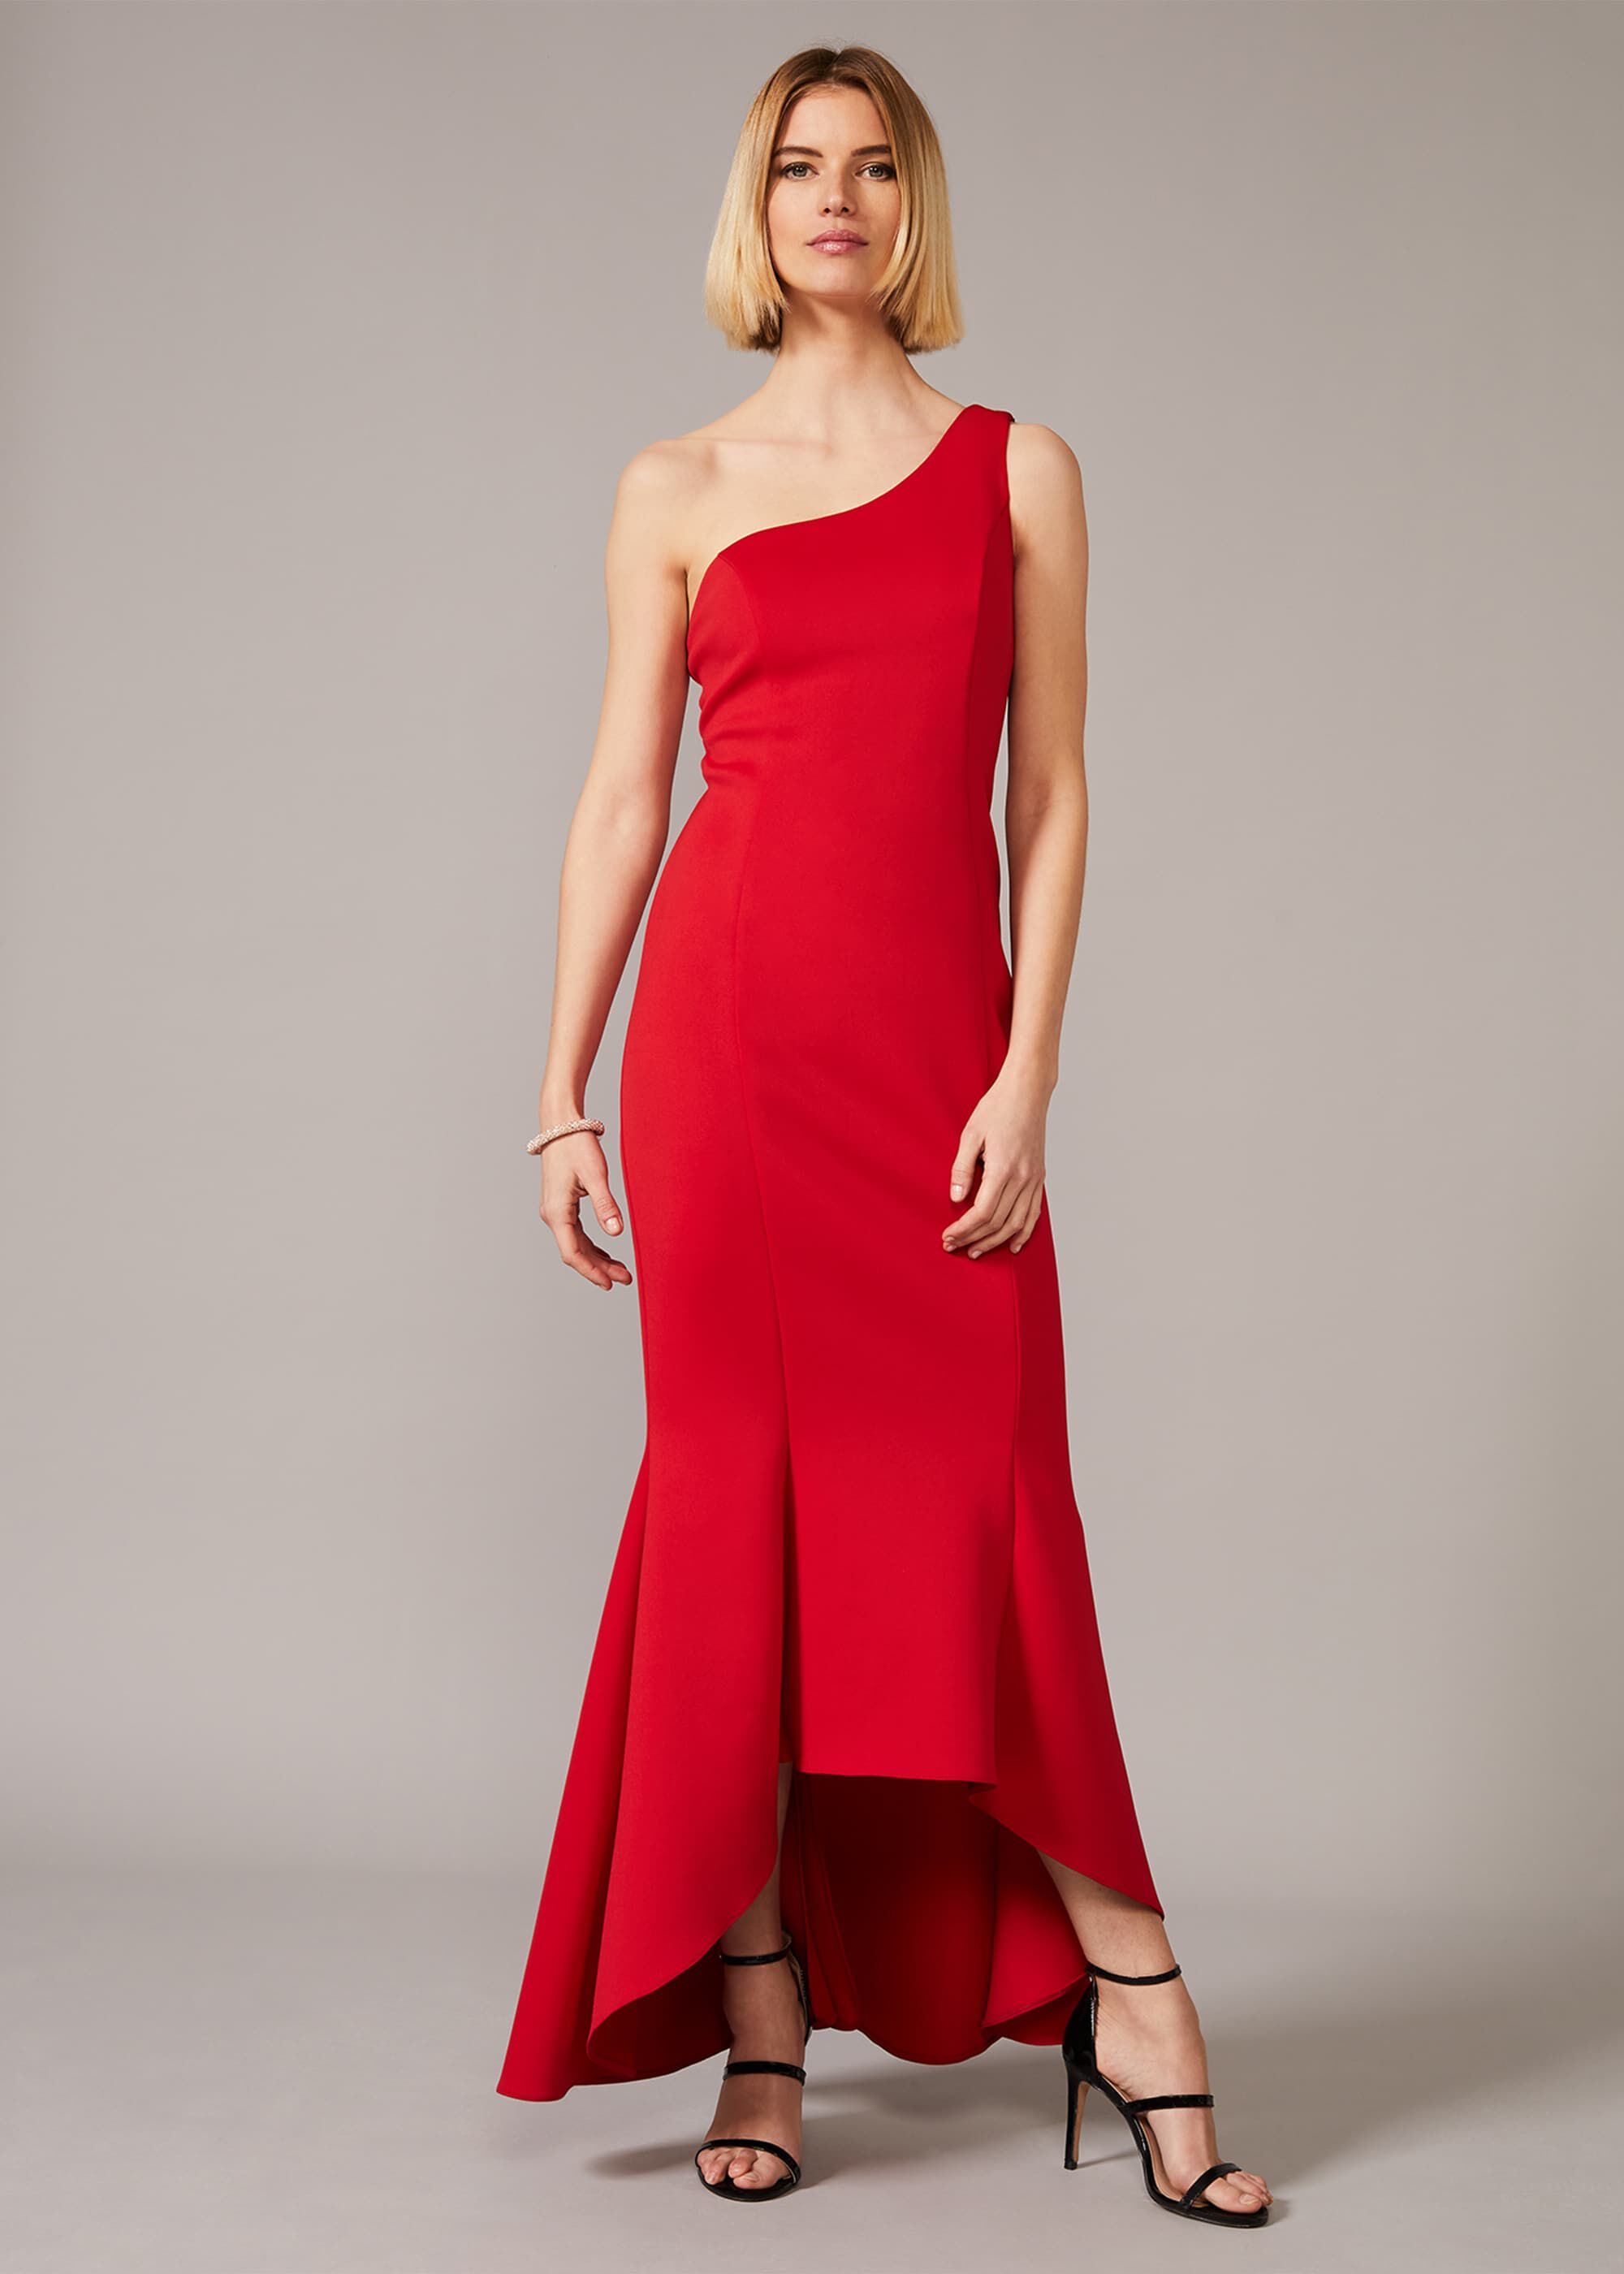 Phase Eight Dahlia One Shouldered Scuba Dress, Red, Maxi, Occasion Dress